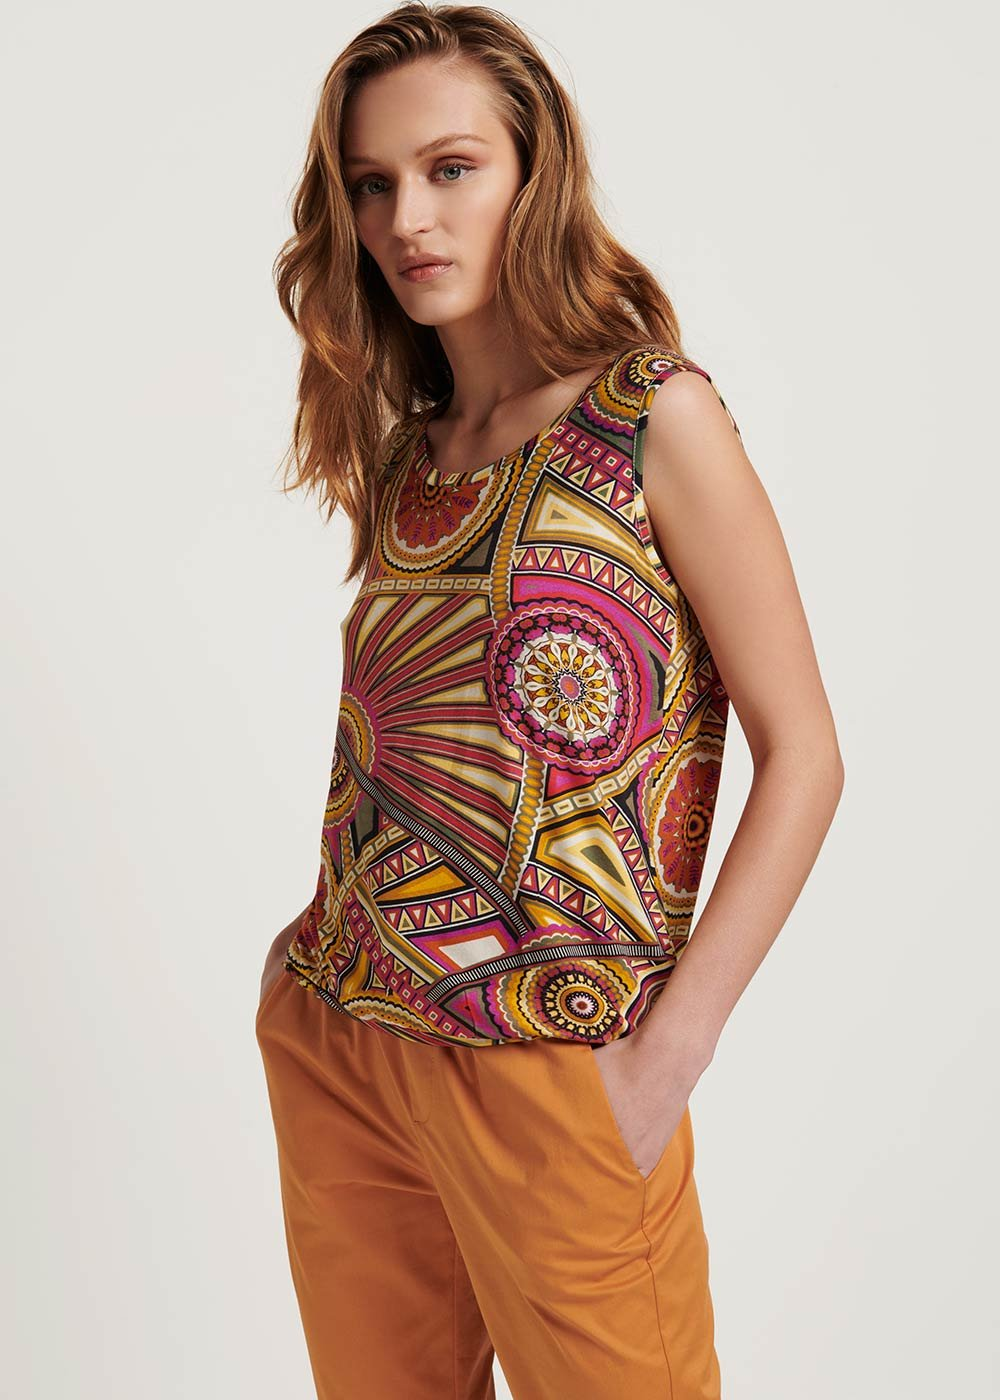 Maria sleeveless patterned top - Aragosta / Timo Fantasia - Woman